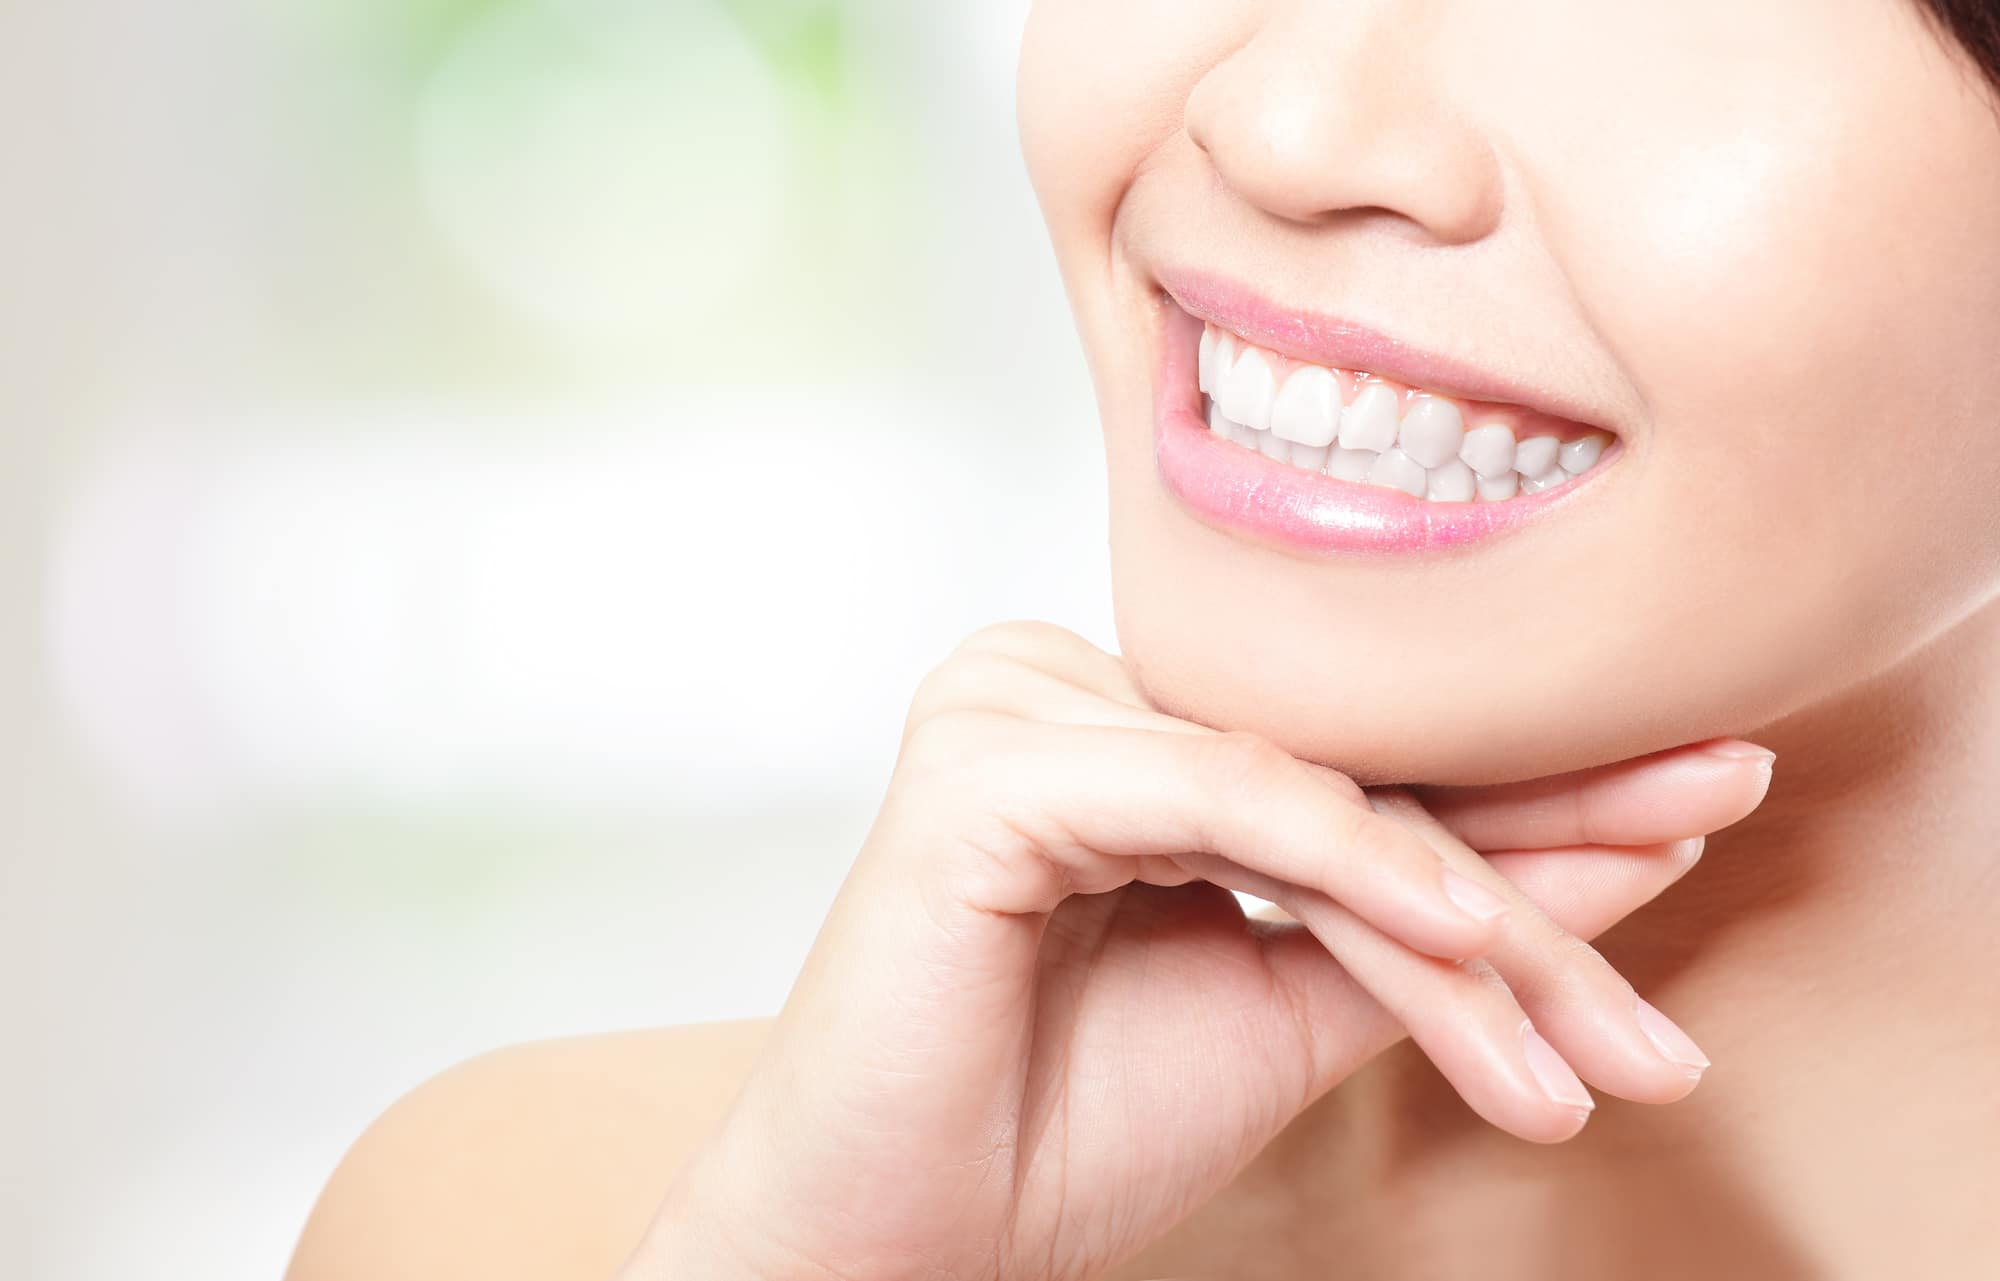 Beautiful young woman teeth close up with copy space on the left side. Isolated over green background, asian beauty model